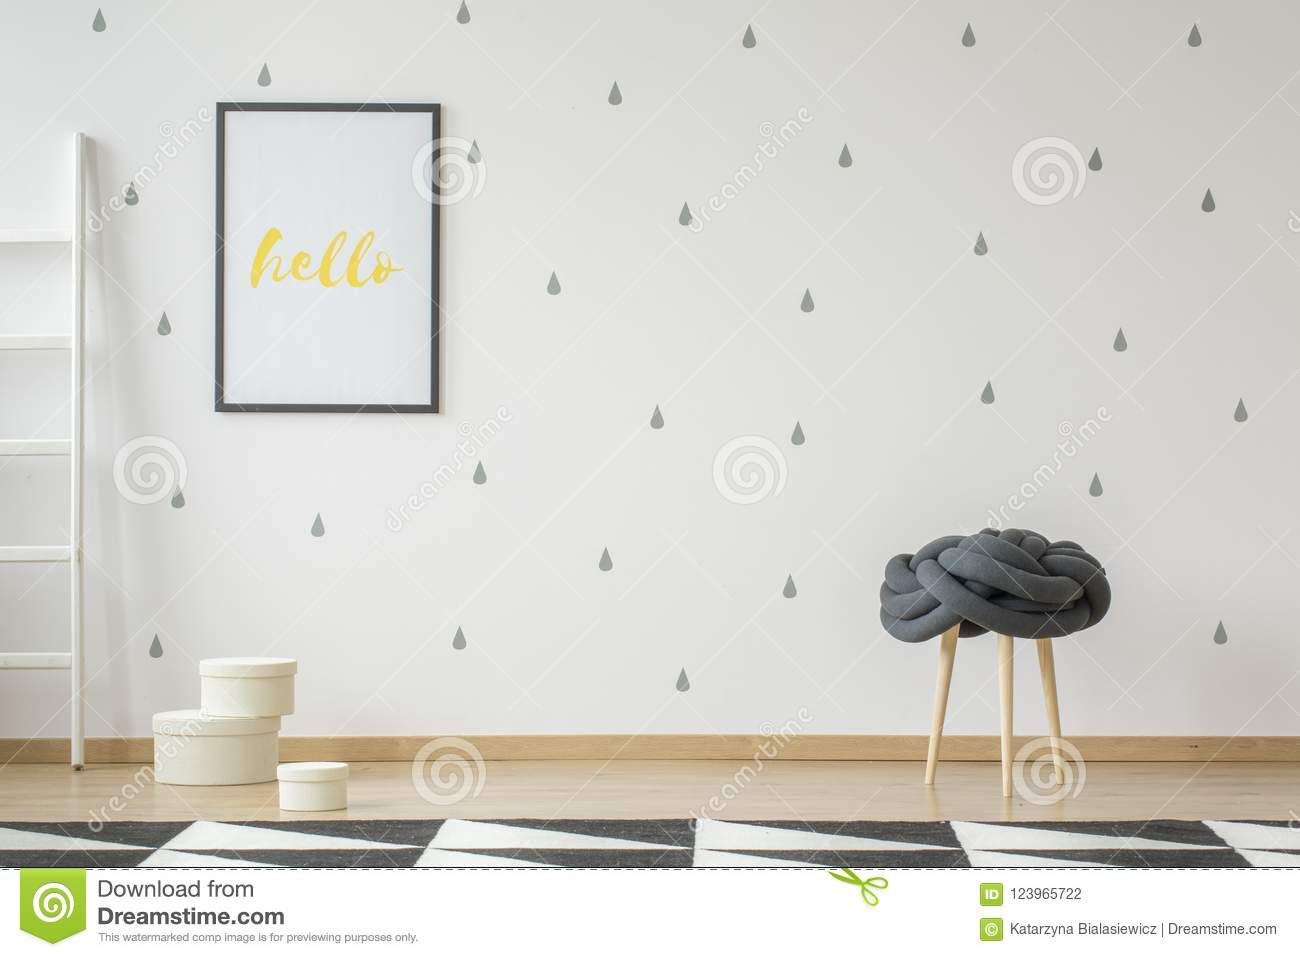 Poster on wallpaper in teenager`s room interior with stool and g